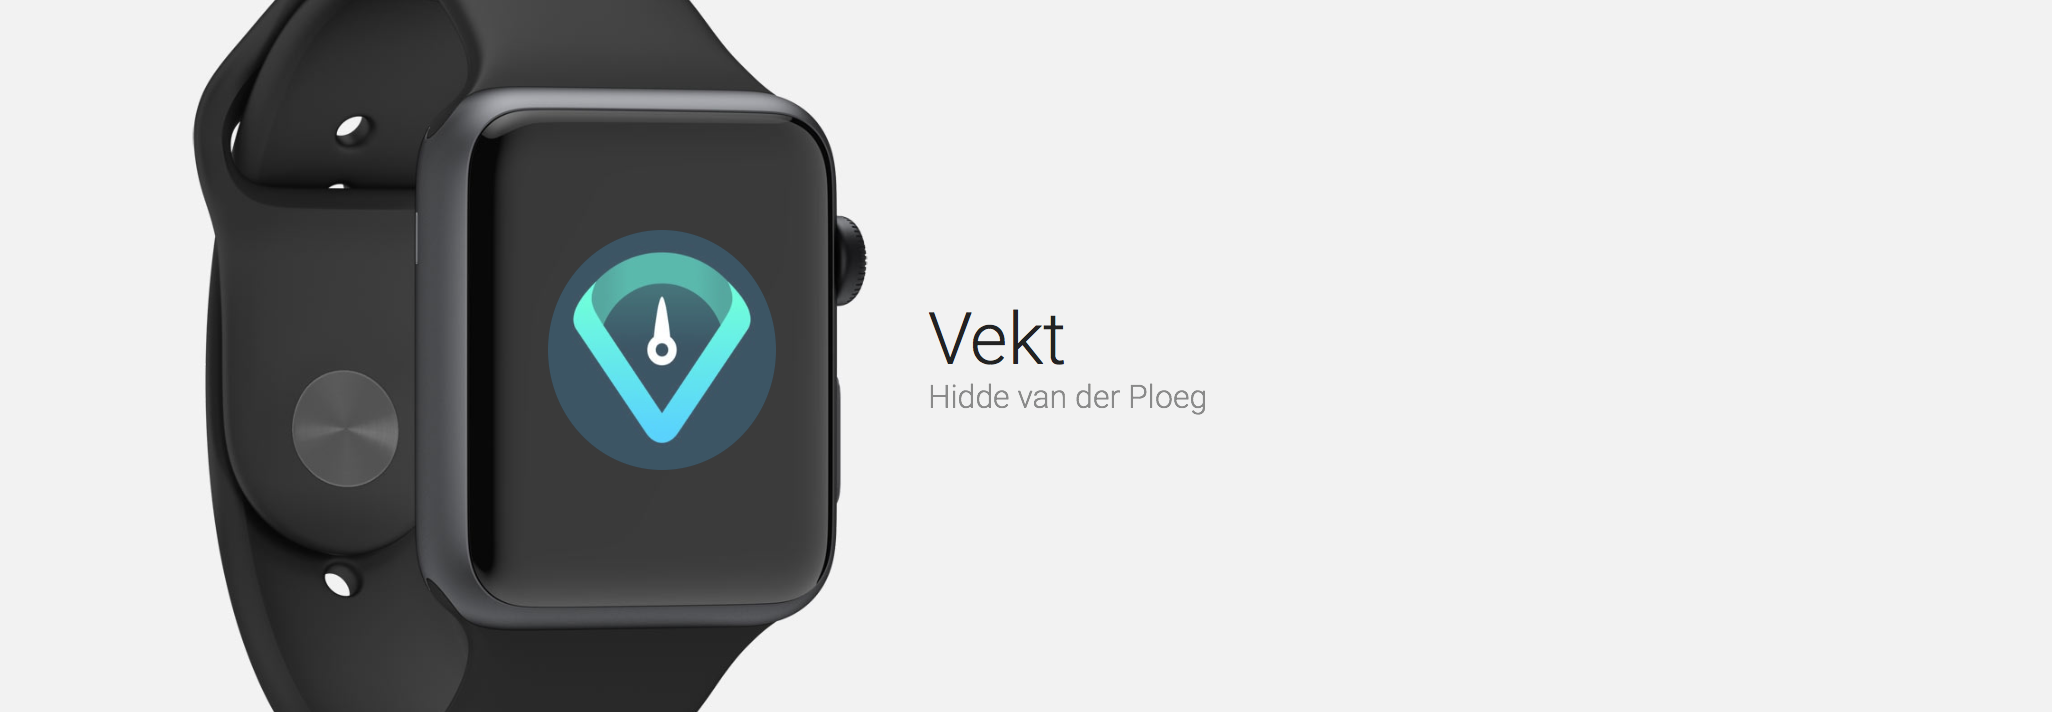 Vekt - Track Your Weight Fast & Simple on the Apple Watch